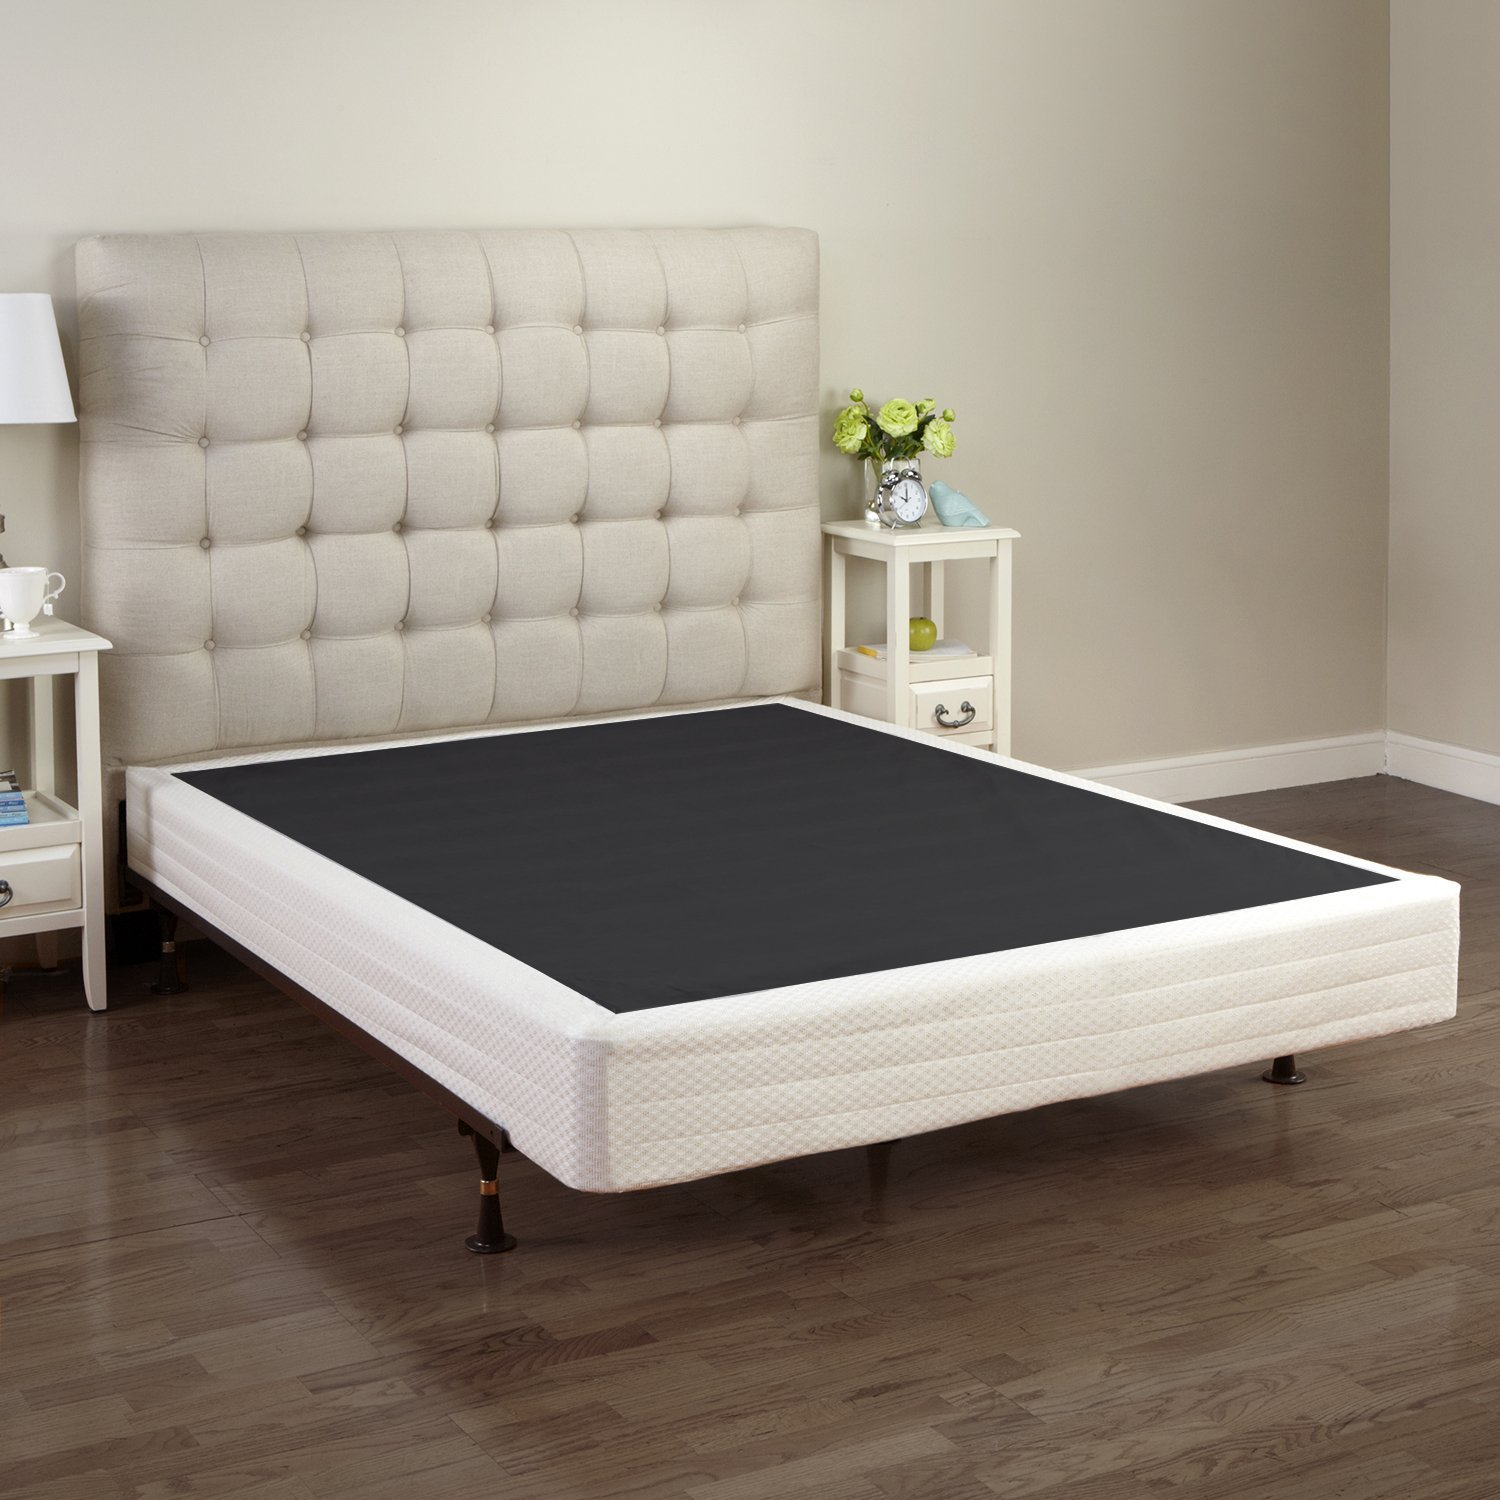 top 10 best mattress foundations in 2017 review. Black Bedroom Furniture Sets. Home Design Ideas